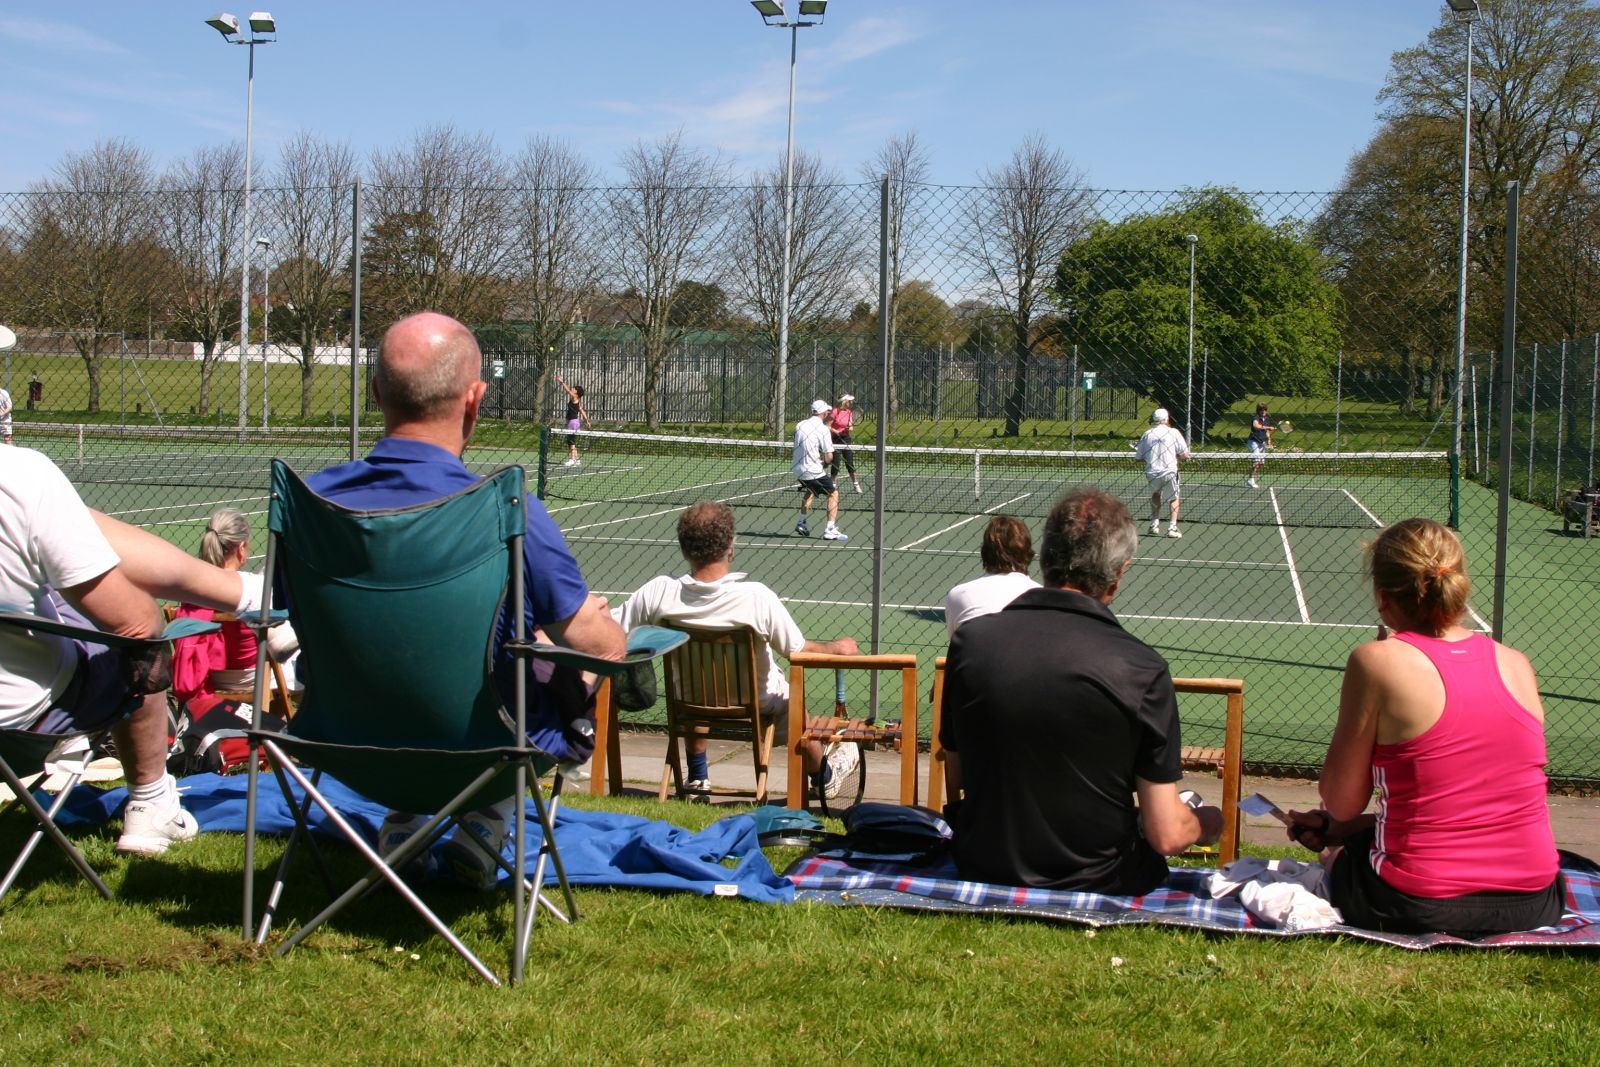 Spectators in the sunshine - May 2013